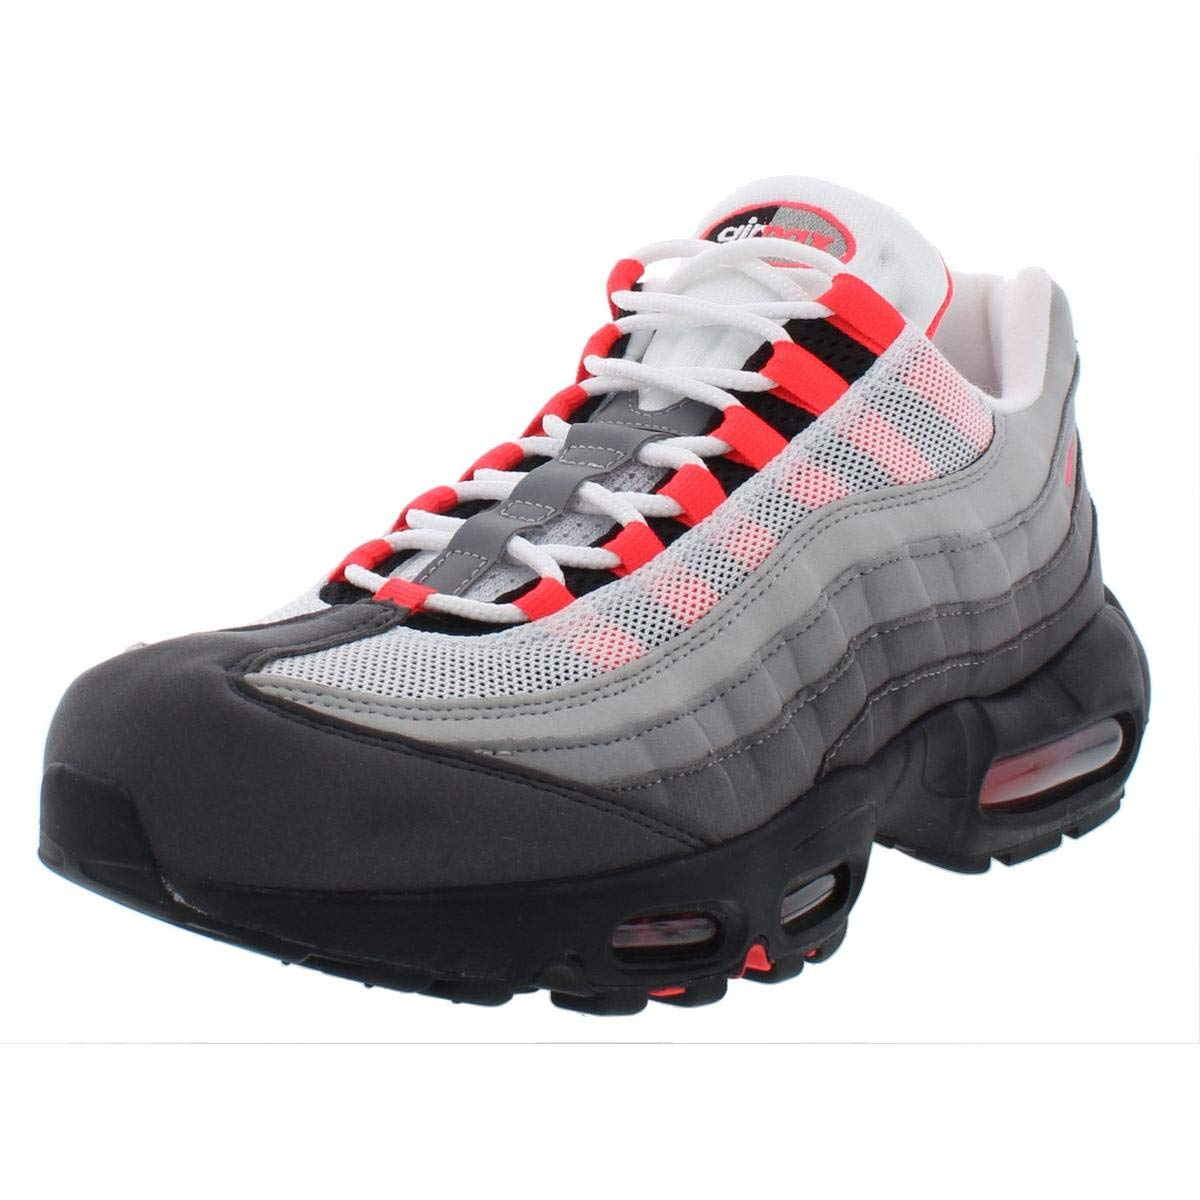 Nike Womens Air Max 95 OG Lifestyle Hiking, Trail Shoes Gray 8.5 Medium (B,M)